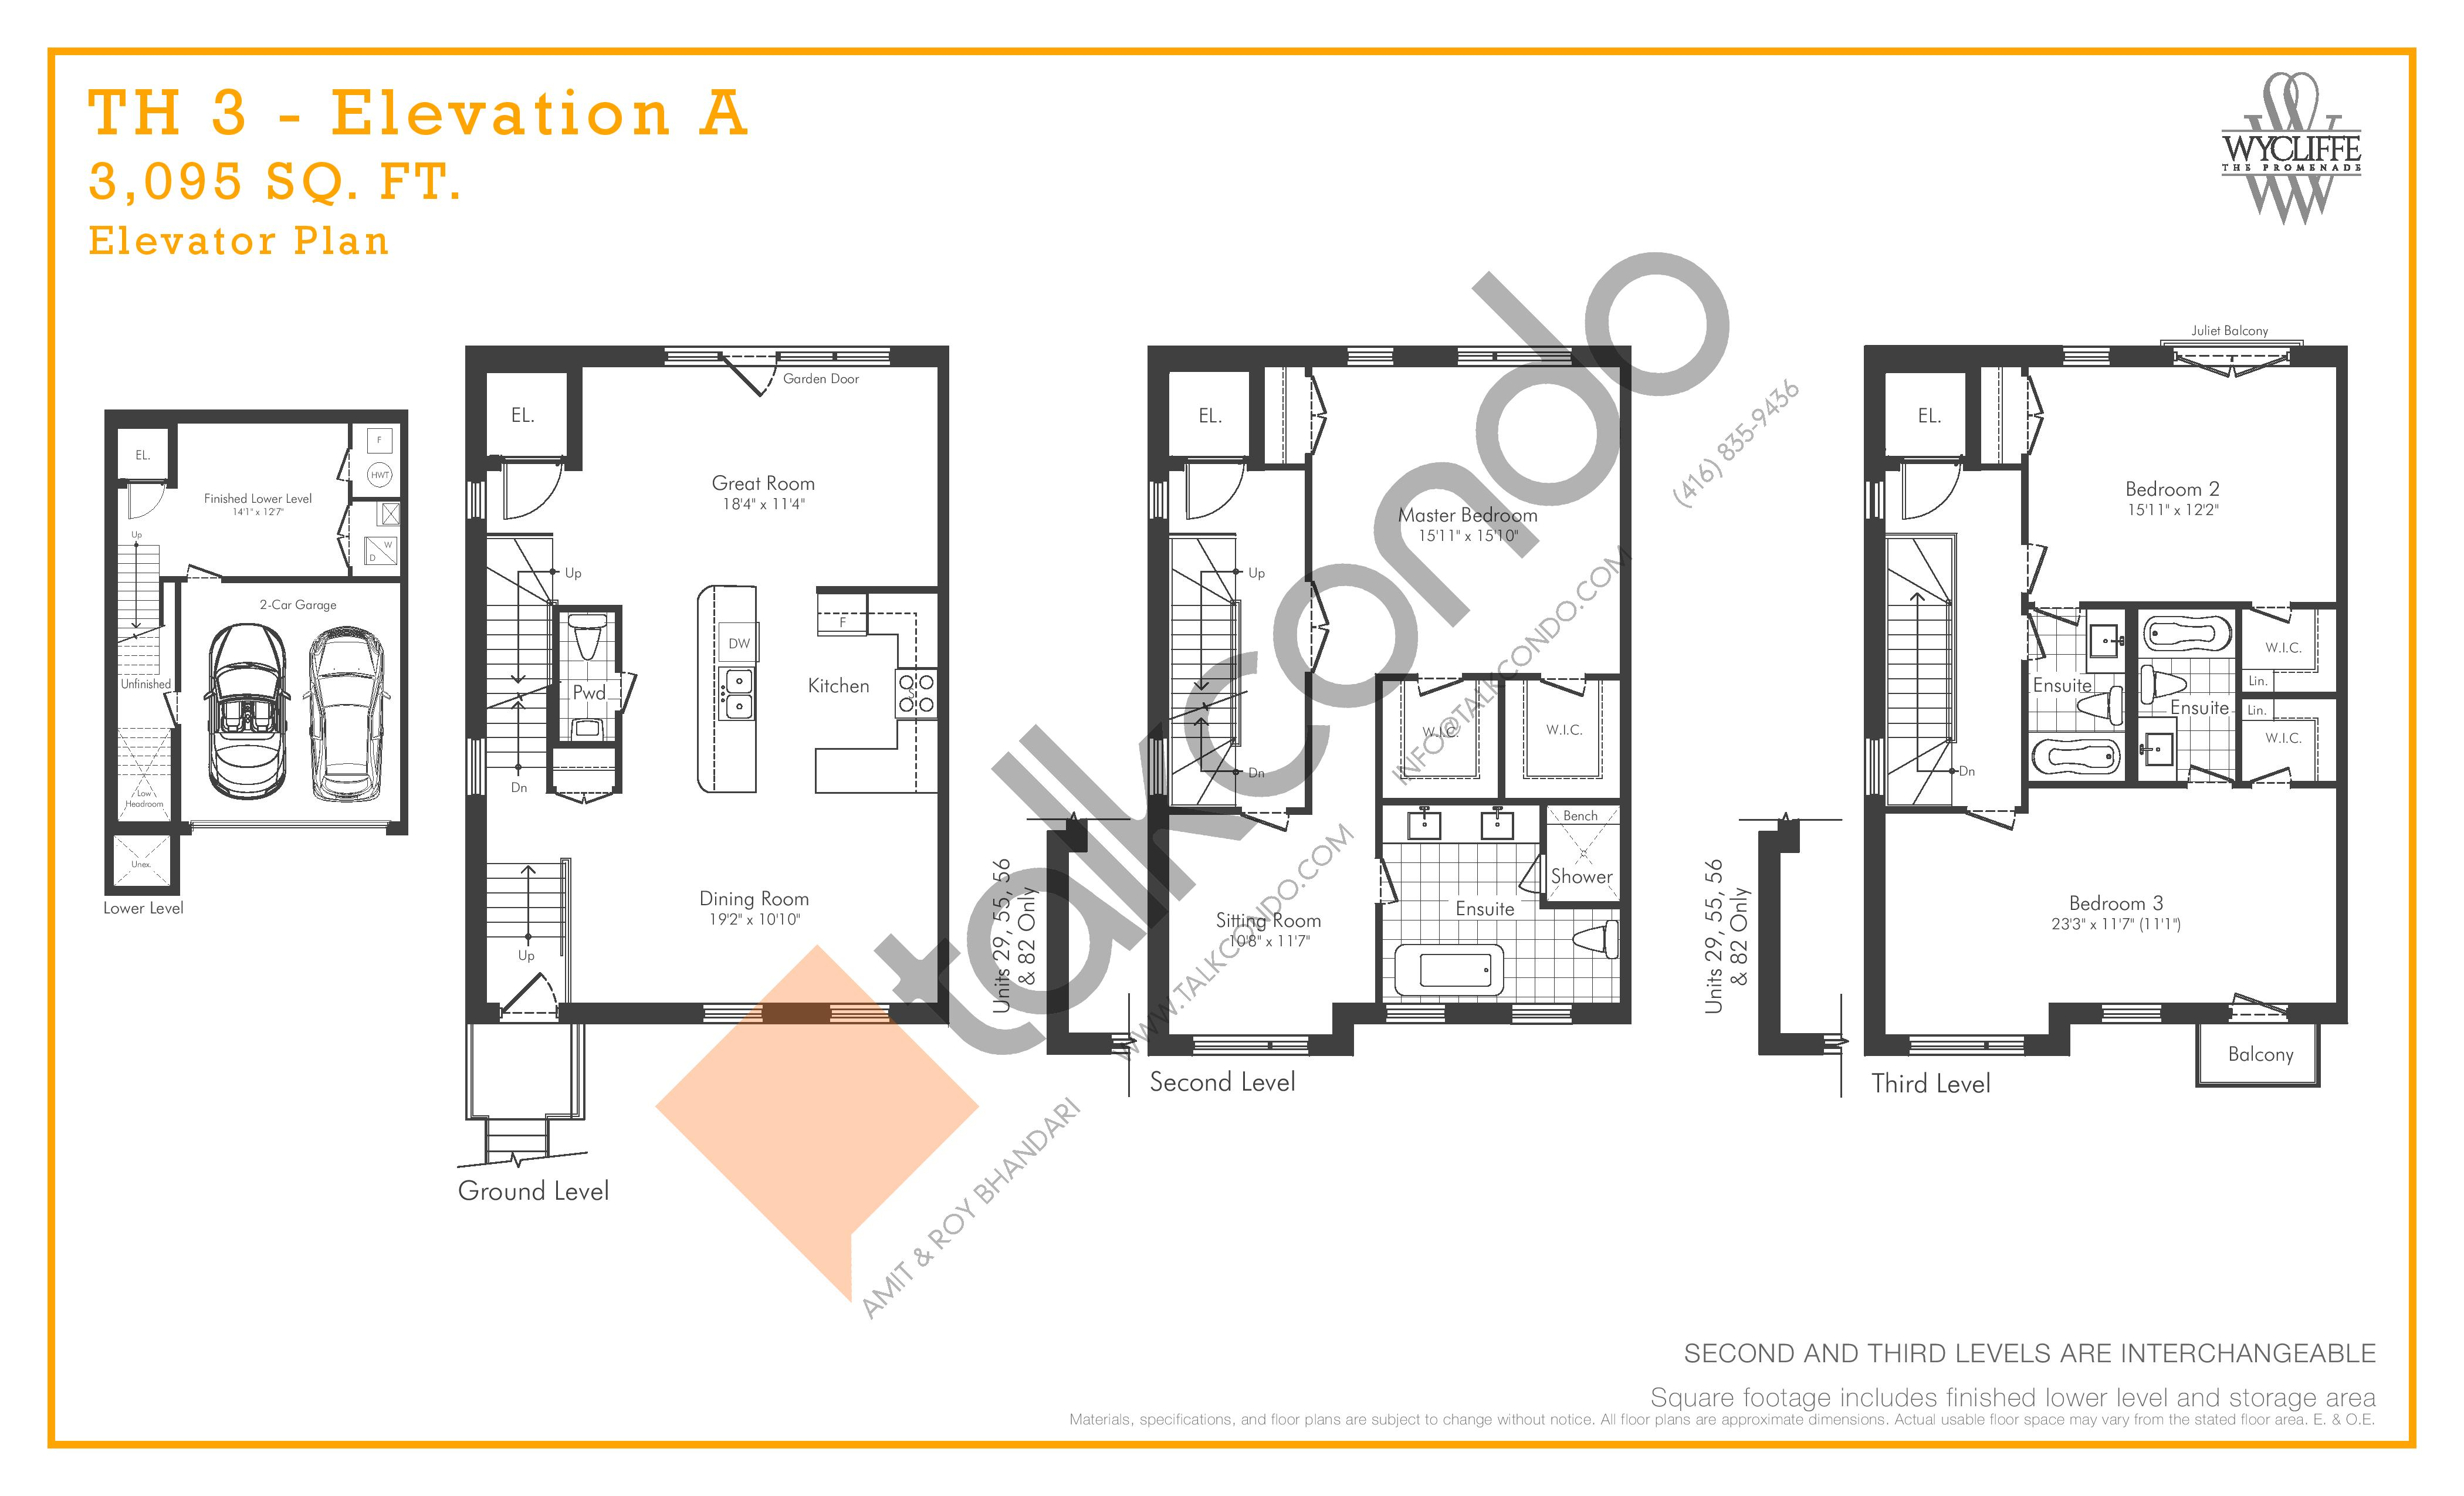 TH 3 - Elevation A Elevator Plan Floor Plan at Wycliffe at the Promenade - 3095 sq.ft